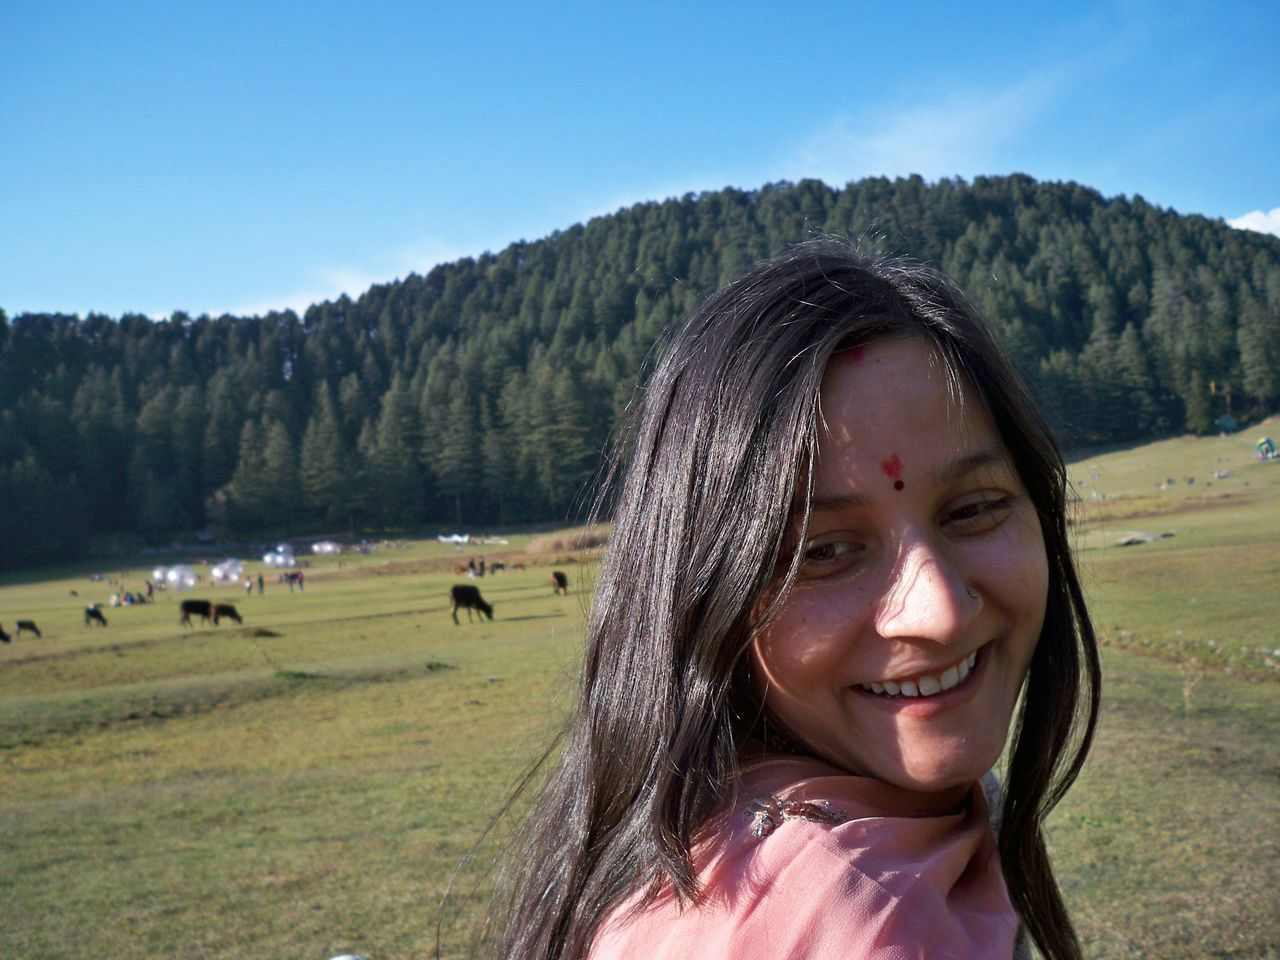 smiling, real people, looking at camera, day, portrait, field, outdoors, nature, landscape, happiness, tree, one person, sky, grass, cheerful, young women, lifestyles, beauty in nature, scenics, young adult, mountain, people